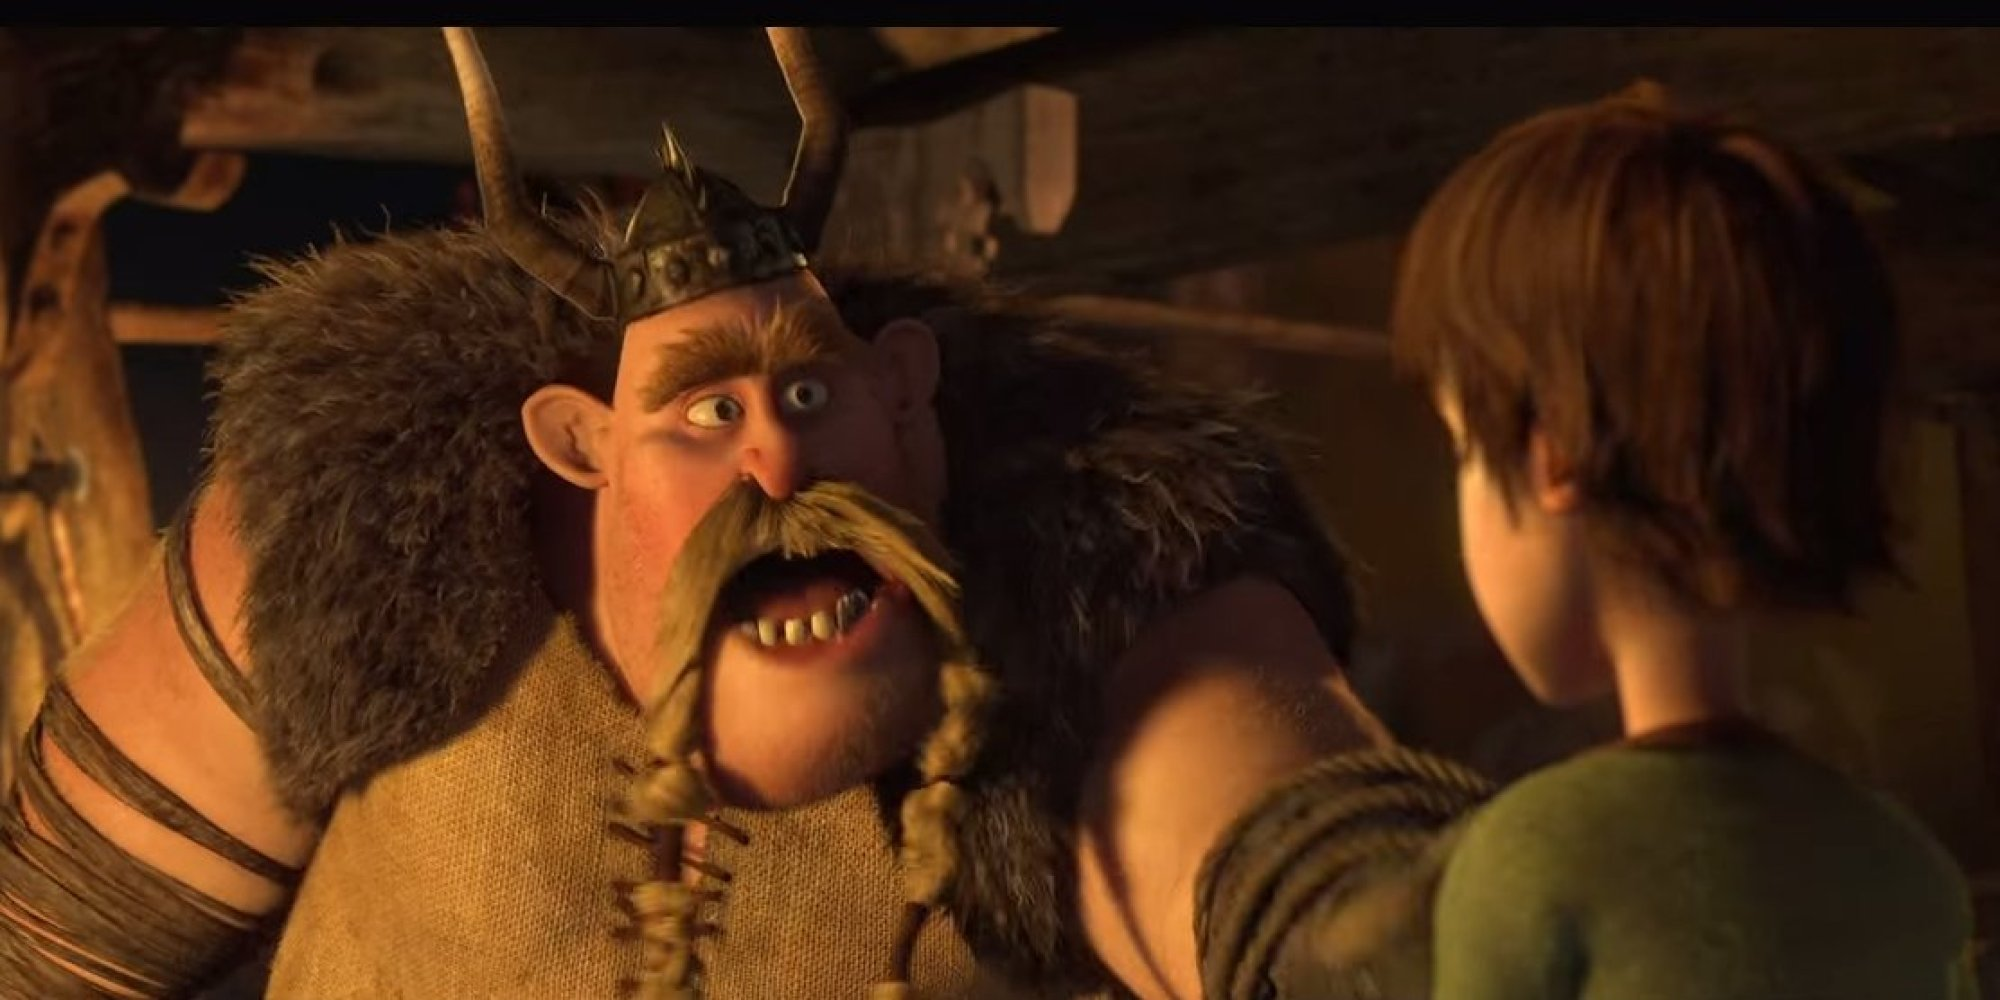 How to train your dragon 2 character gobber the belch will come out how to train your dragon 2 character gobber the belch will come out as gay huffpost ccuart Images